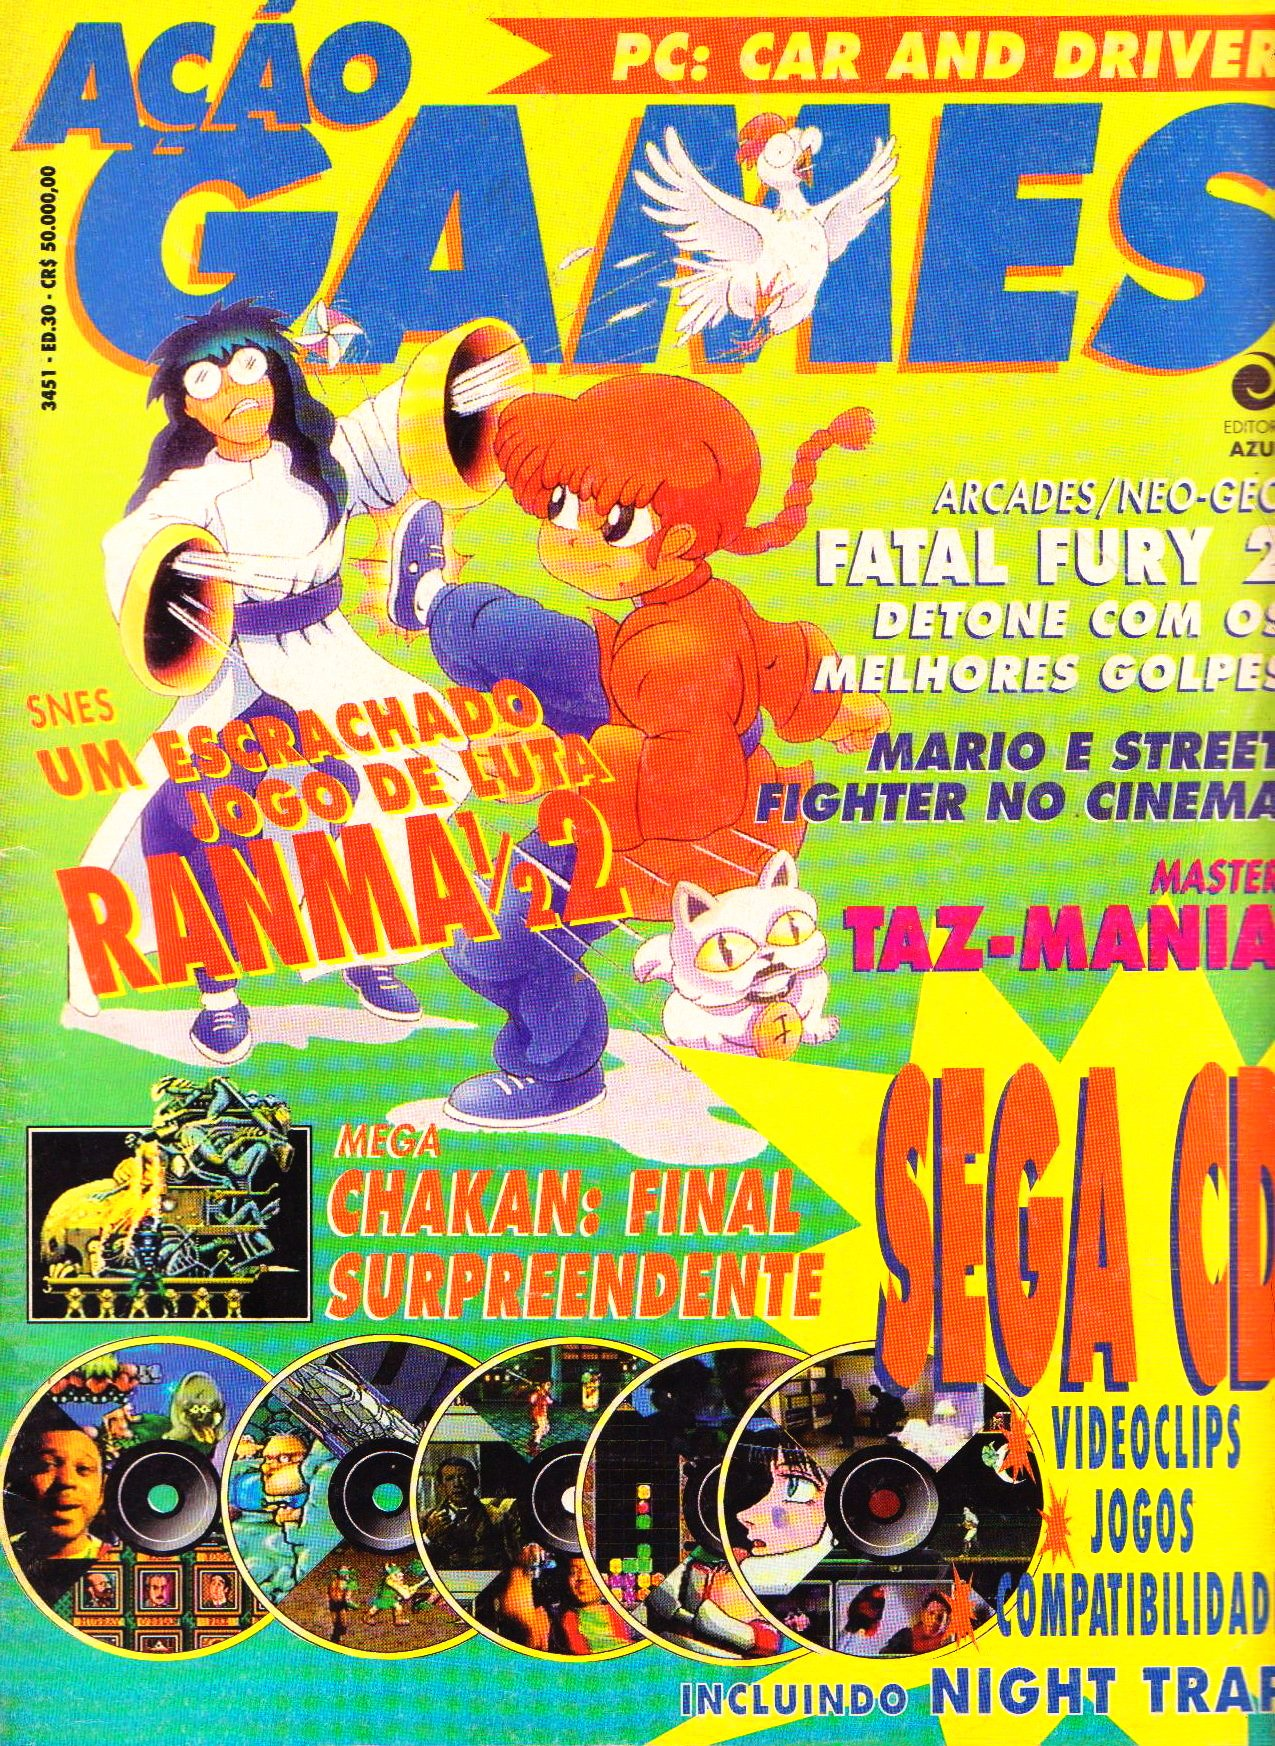 Acao Games Issue 030 (March 1993)